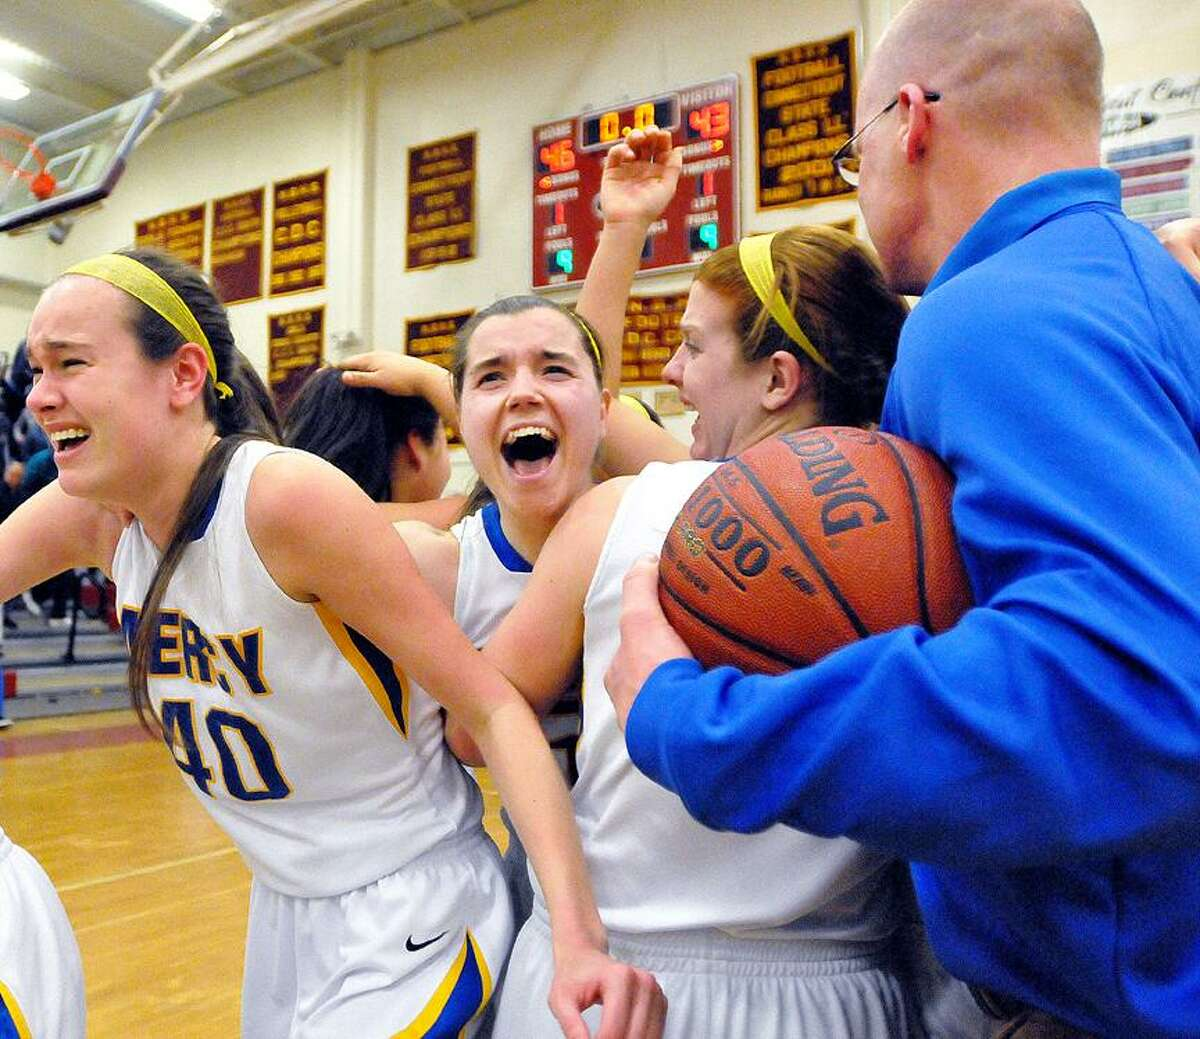 Catherine Avalone/The Middletown PressMercy Head Coach Tim Kohs rushes the court to celebrate with senior captain Maria Weselyj, center senior Liz Falcigno, at right and at left, junior Nicole Carlone following their 46-43 win over Glastonbury in the CIAC Class LL Seminfinal game at New Britain High School. Mercy will make their fourth consecutive appearance in the championship game this weekend at Mohegan Sun this weekend.